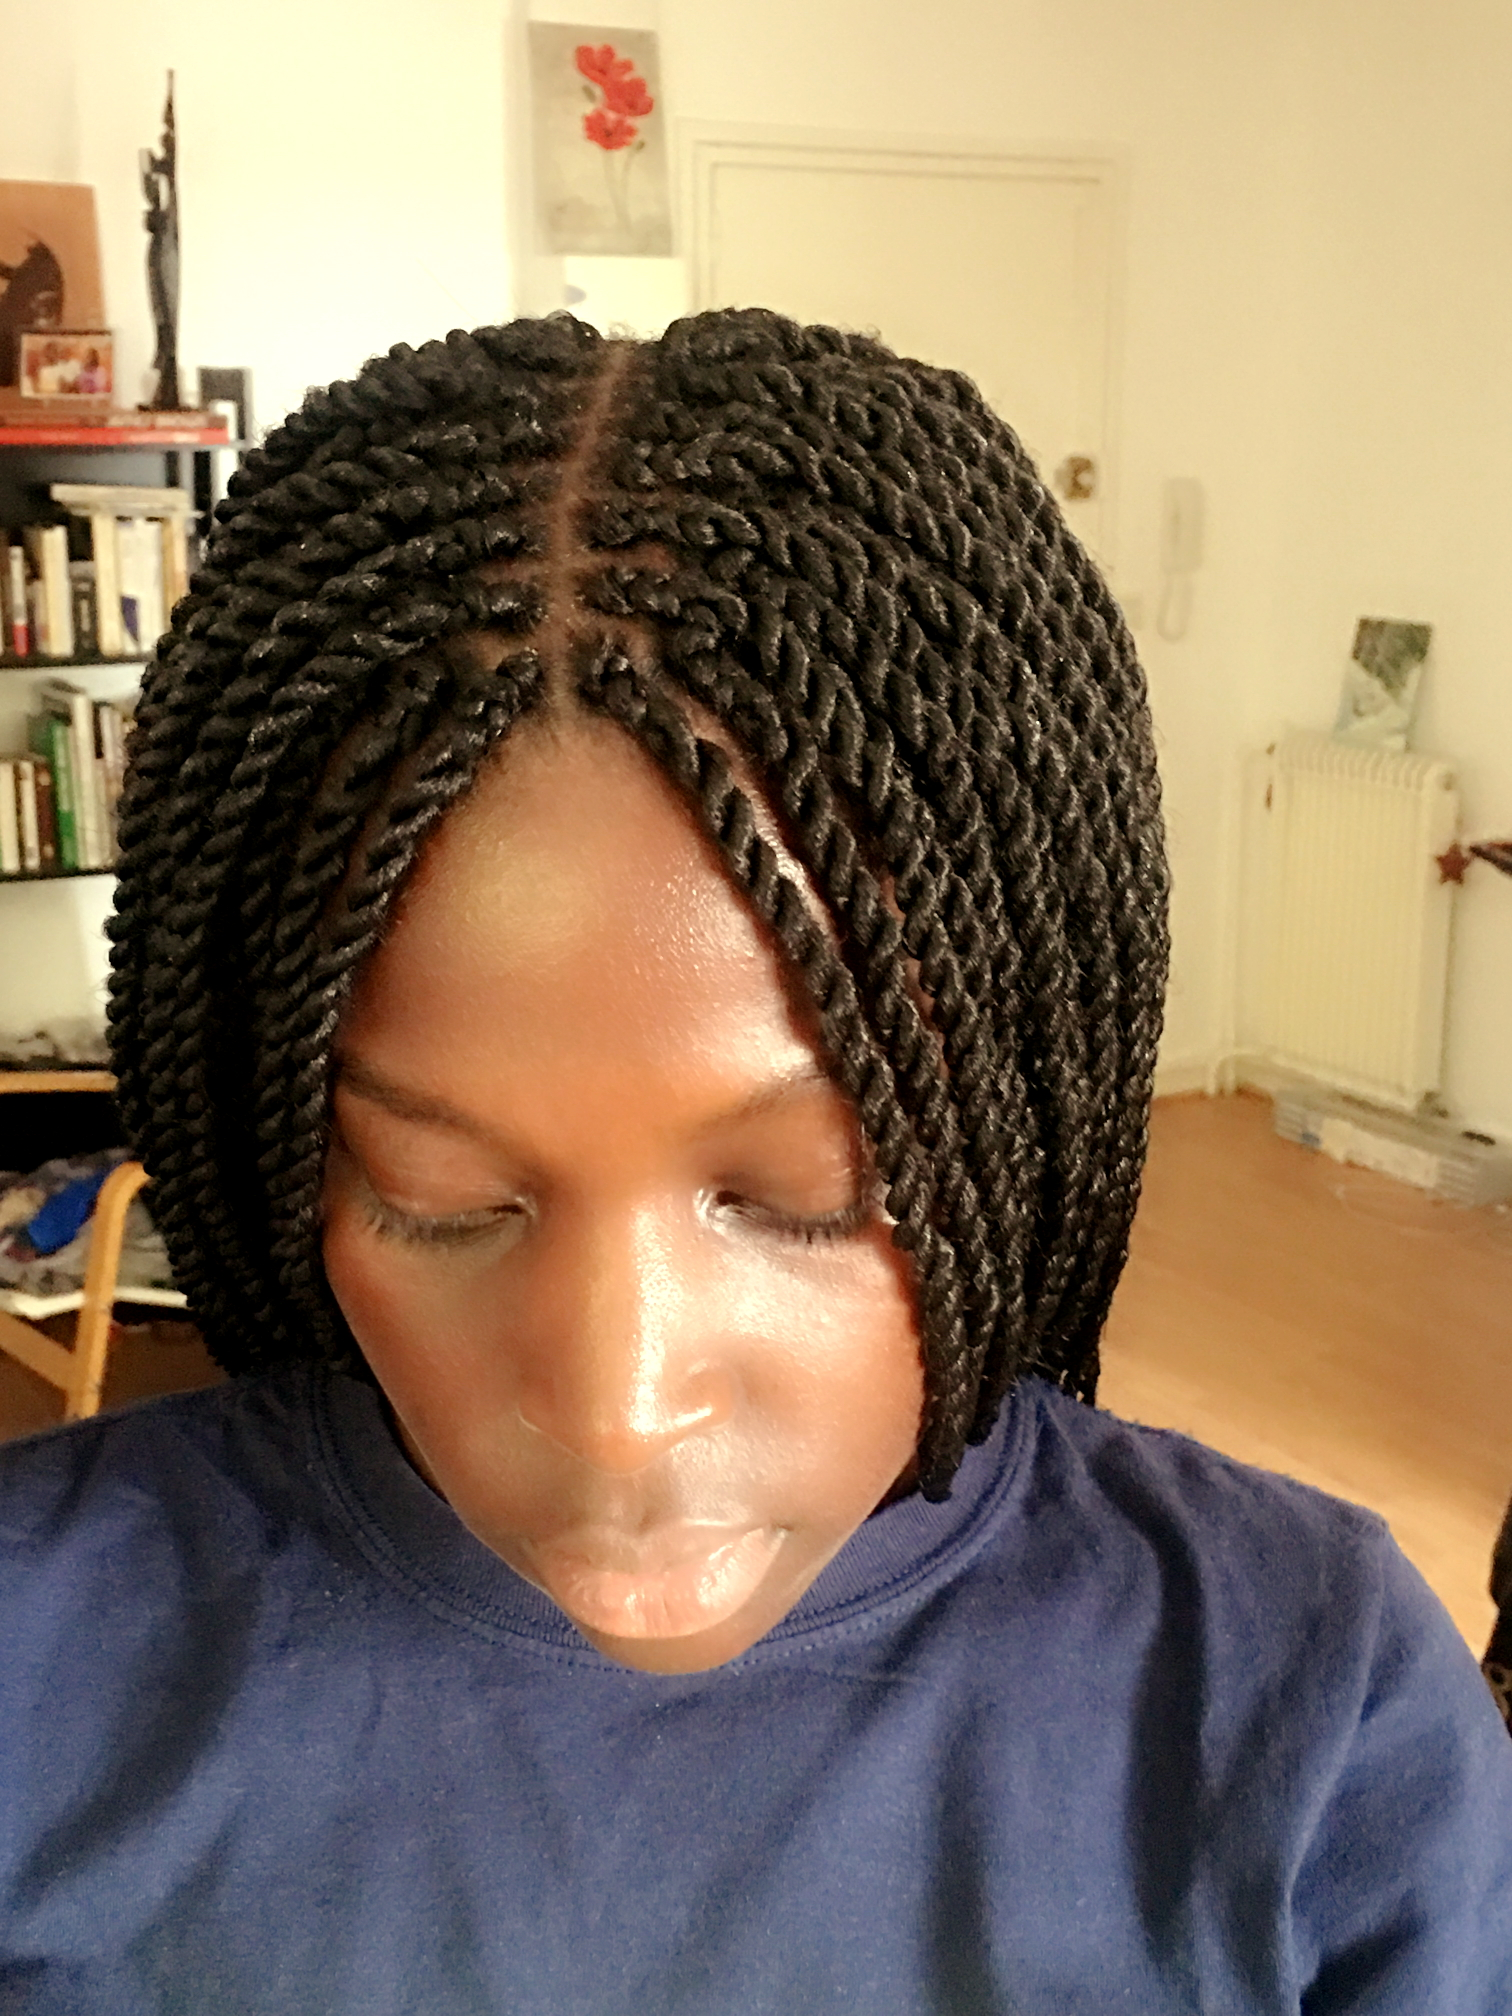 salon de coiffure afro tresse tresses box braids crochet braids vanilles tissages paris 75 77 78 91 92 93 94 95 PZDZEEOI